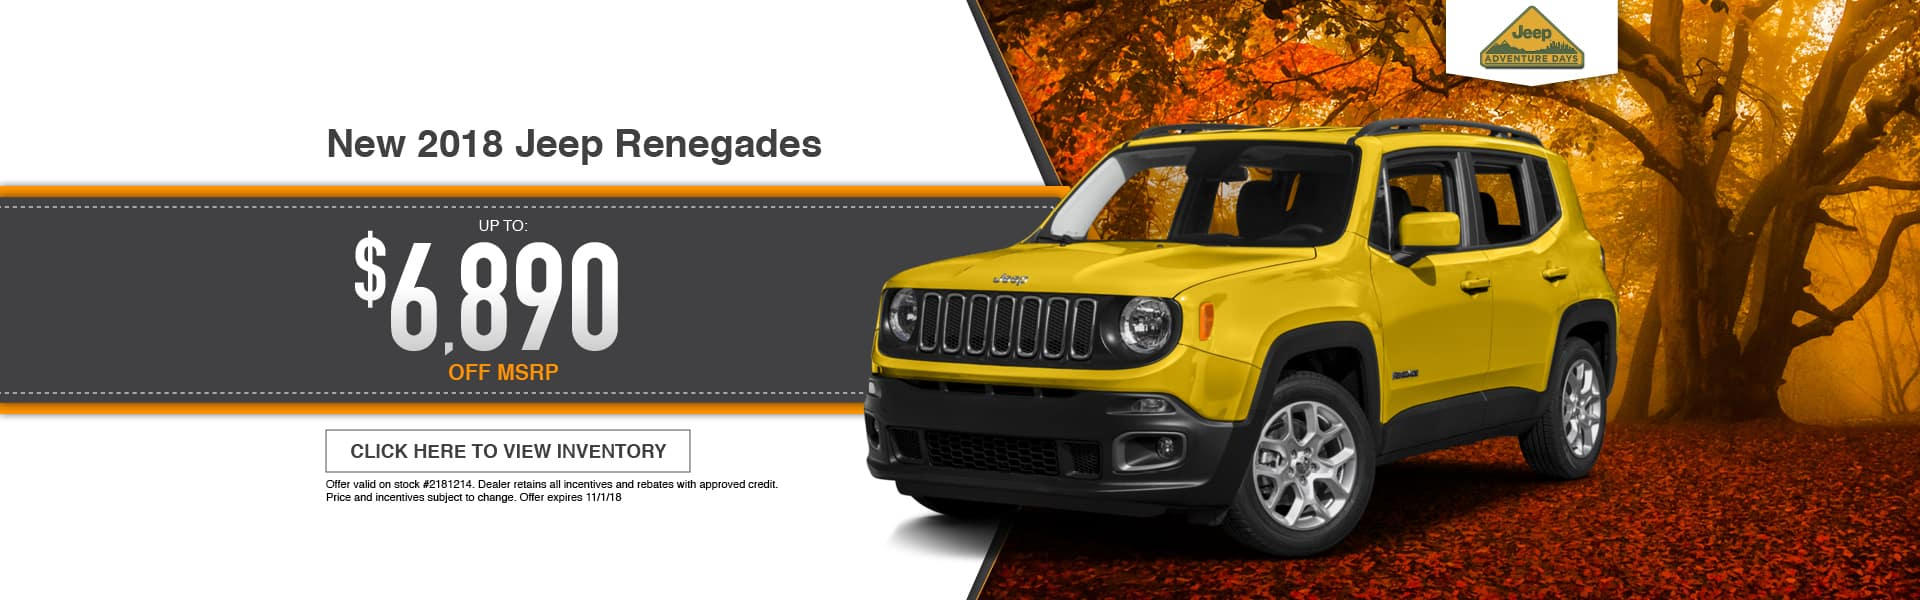 New 2018 Jeep Renegade Special at Thomson Jeep in Thomson, GA